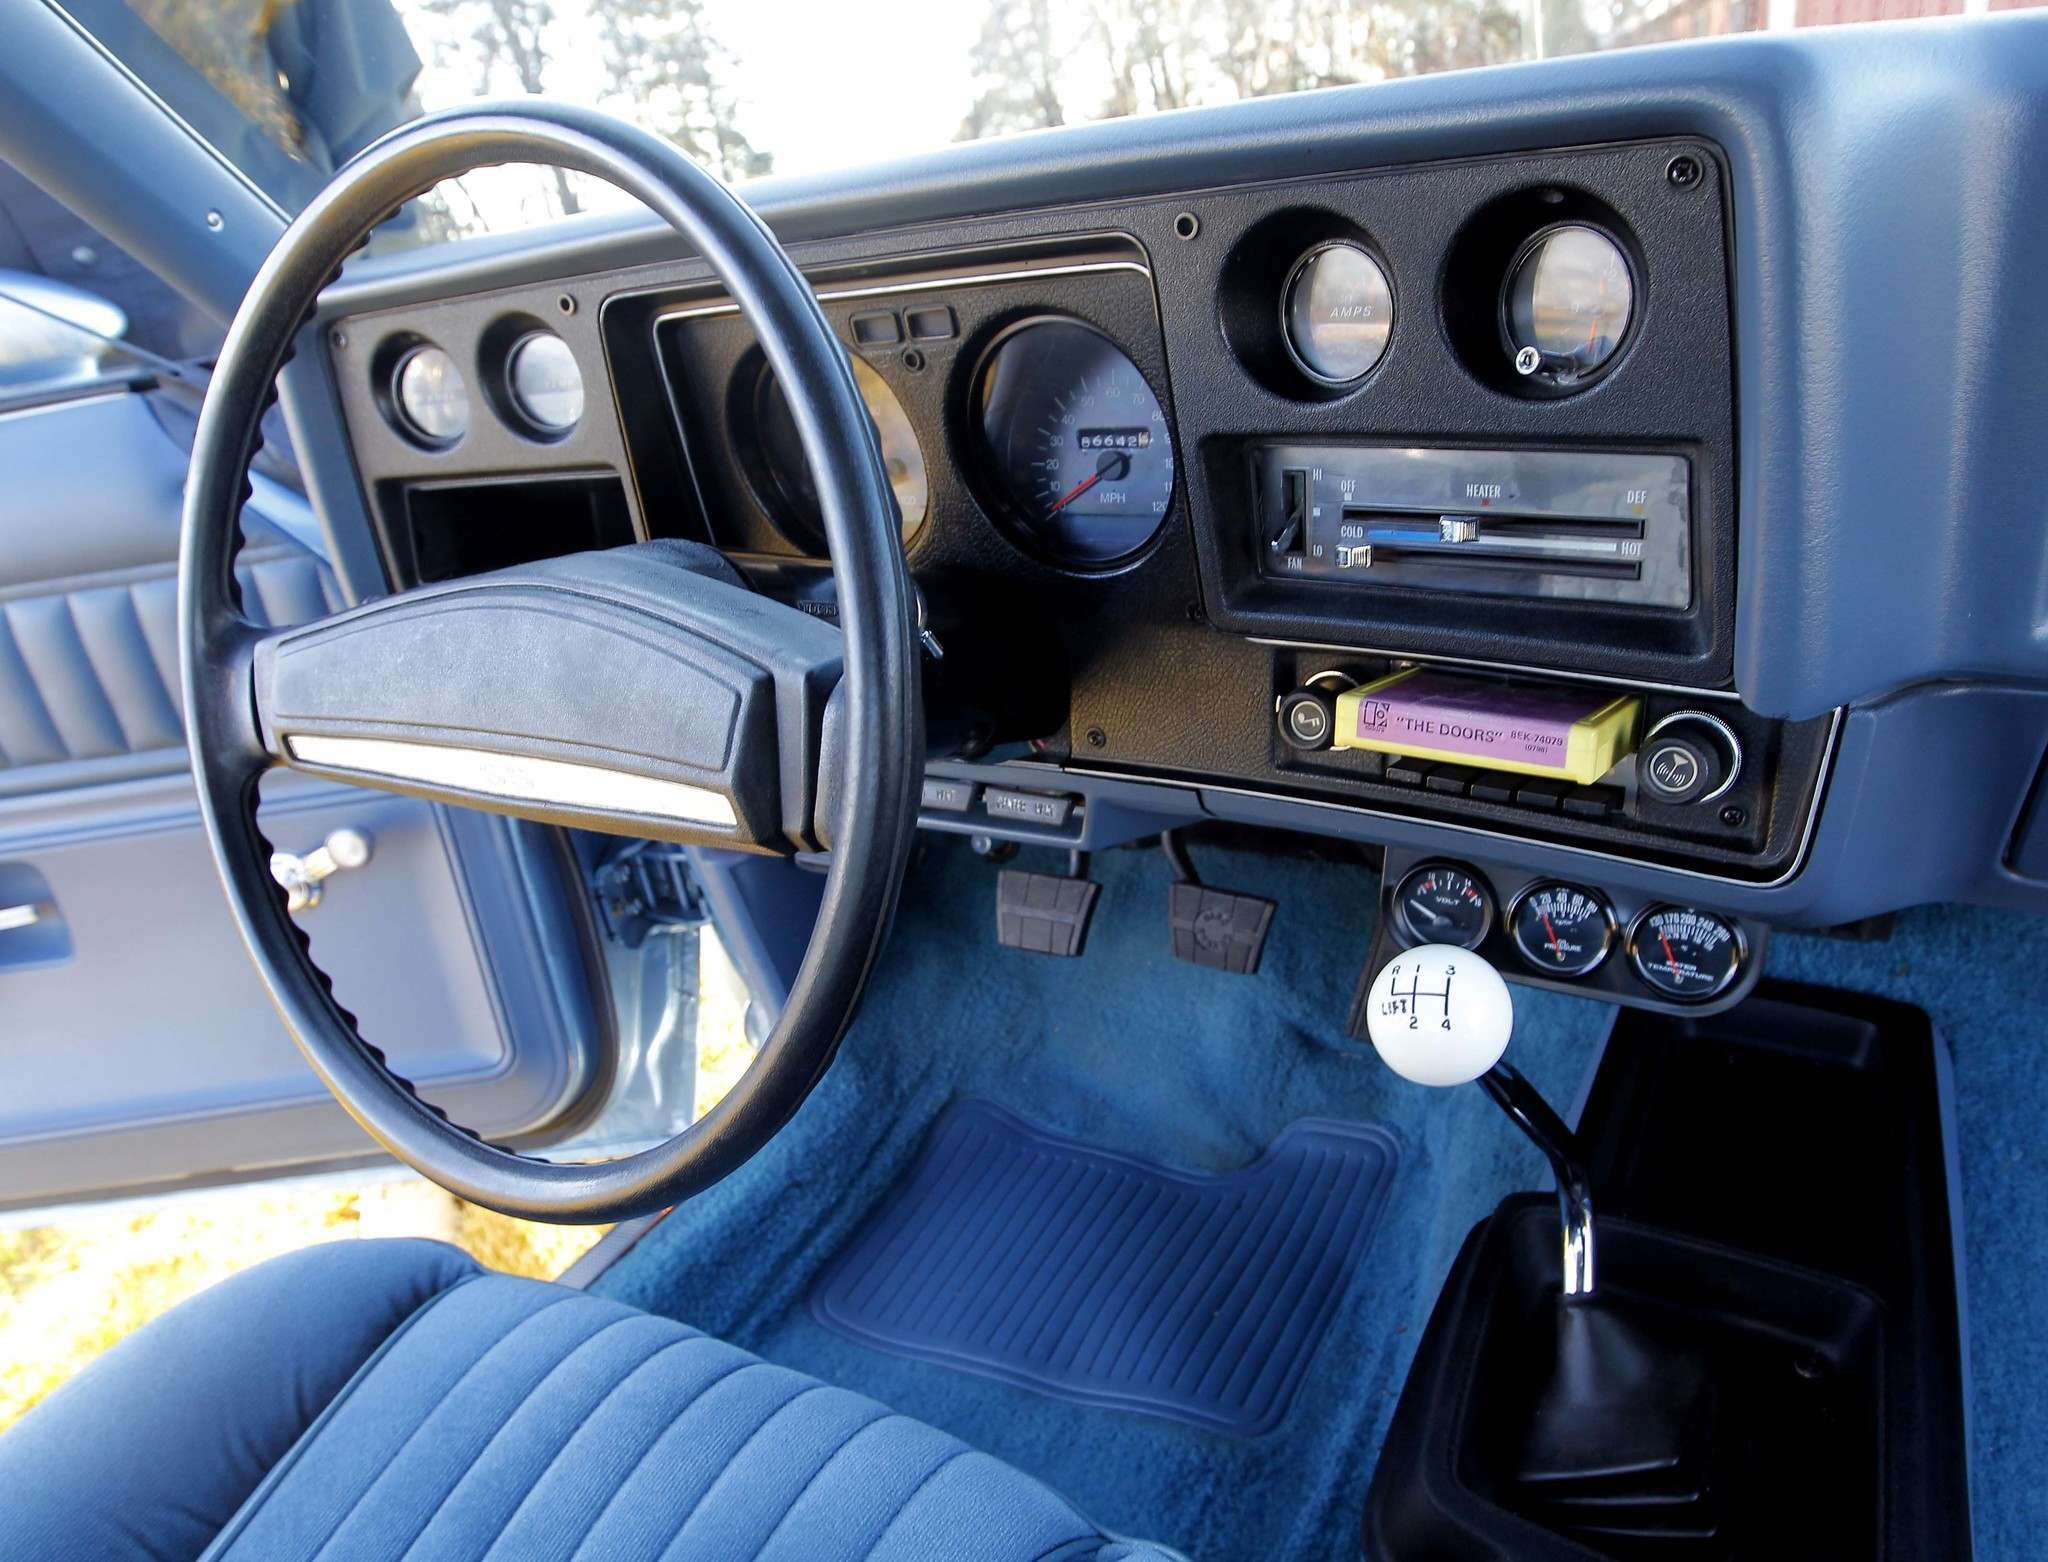 Dash includes an 8-track player complete with a Doors tape.